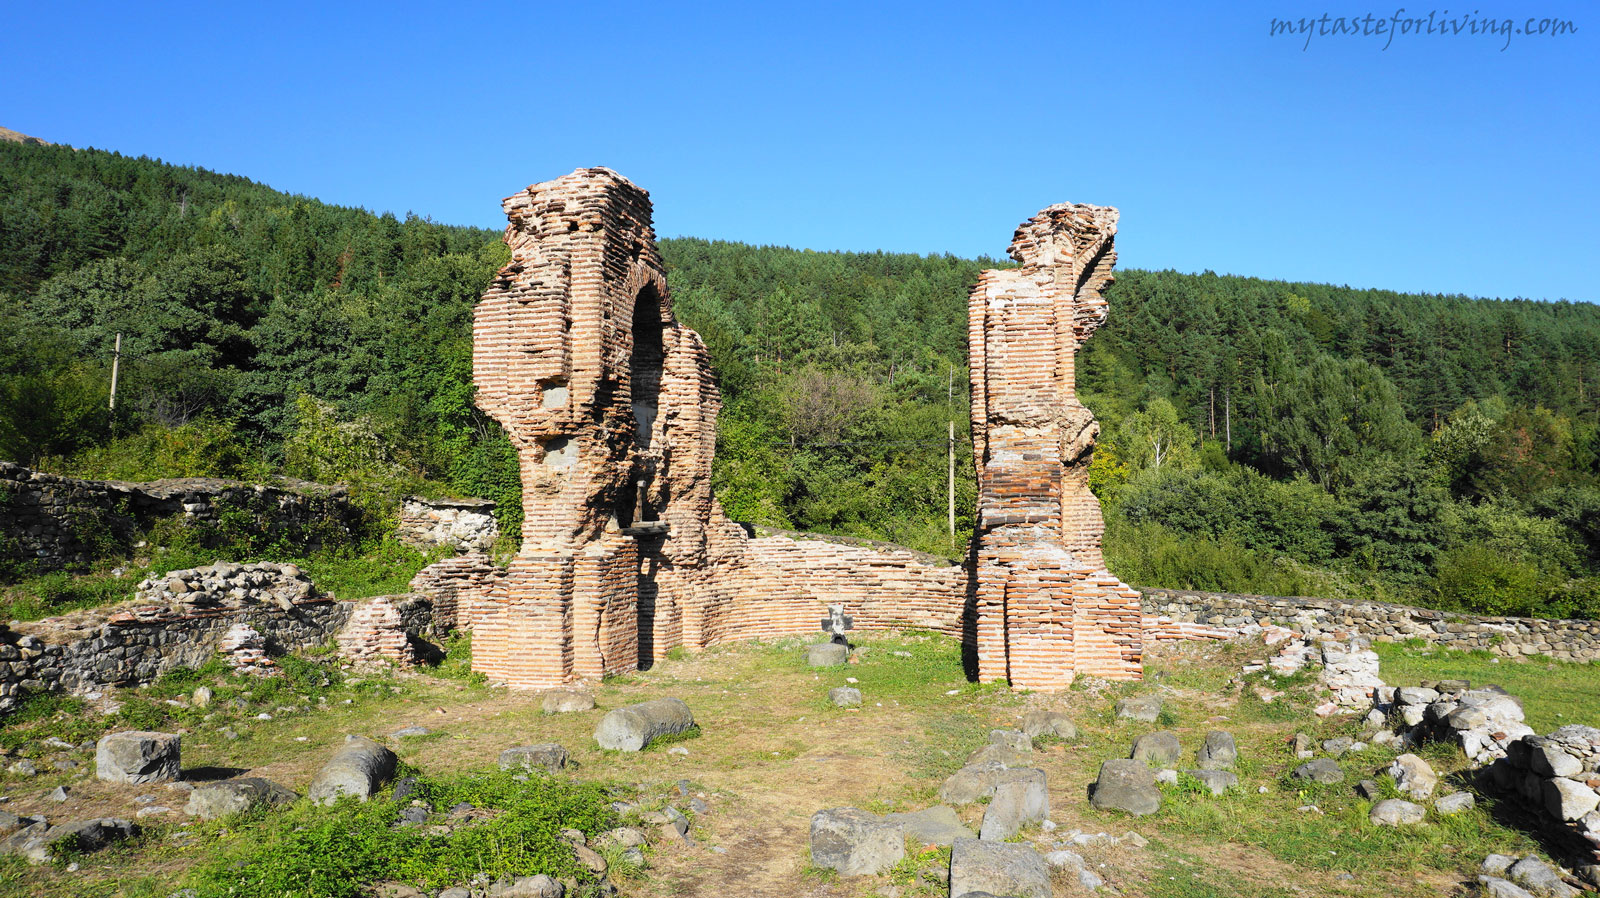 The Elenska Basilica is located between the town of Pirdop and the village of Anton, at the foot of the southern slopes of of Stara planina (Balkan mountains), Bulgaria. The place is very peaceful, very pleasant for a walk in the nature and suitable for picnics.